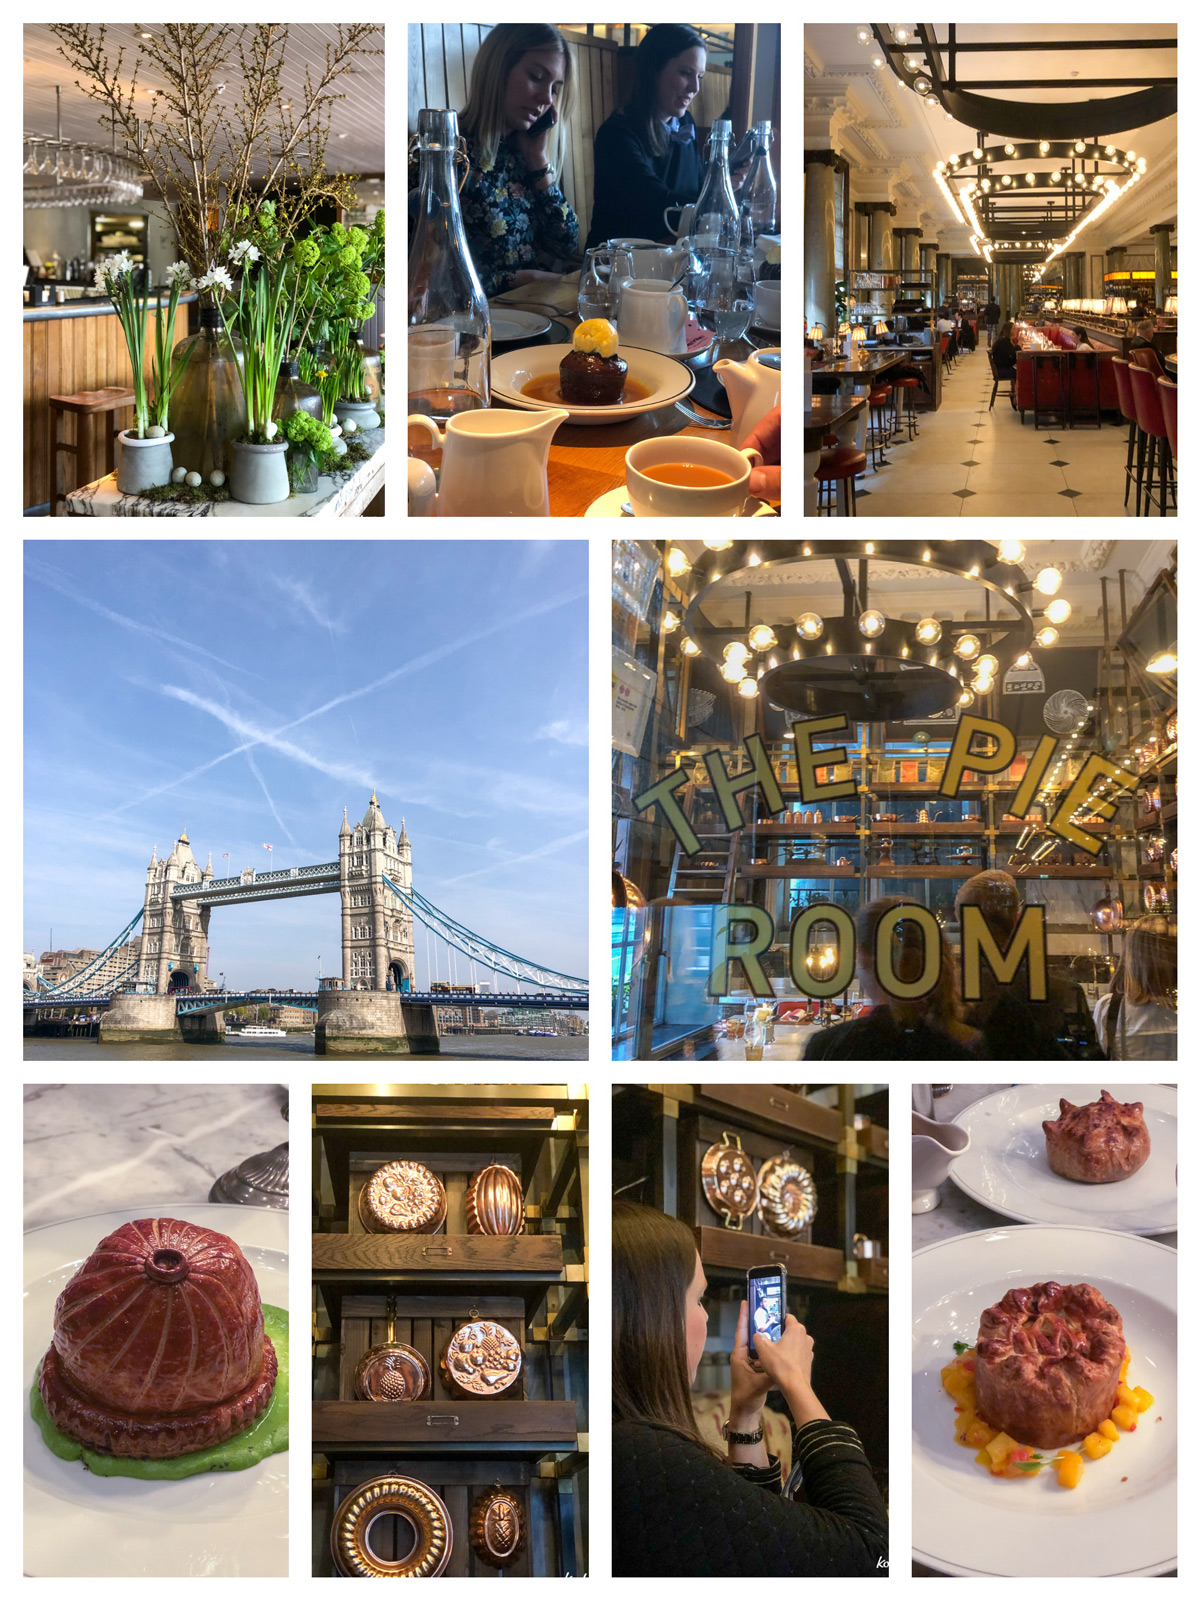 Restaurant Chop House und Holborn, London | Kenwood Reise | Rezept glutenfreies Shortbread